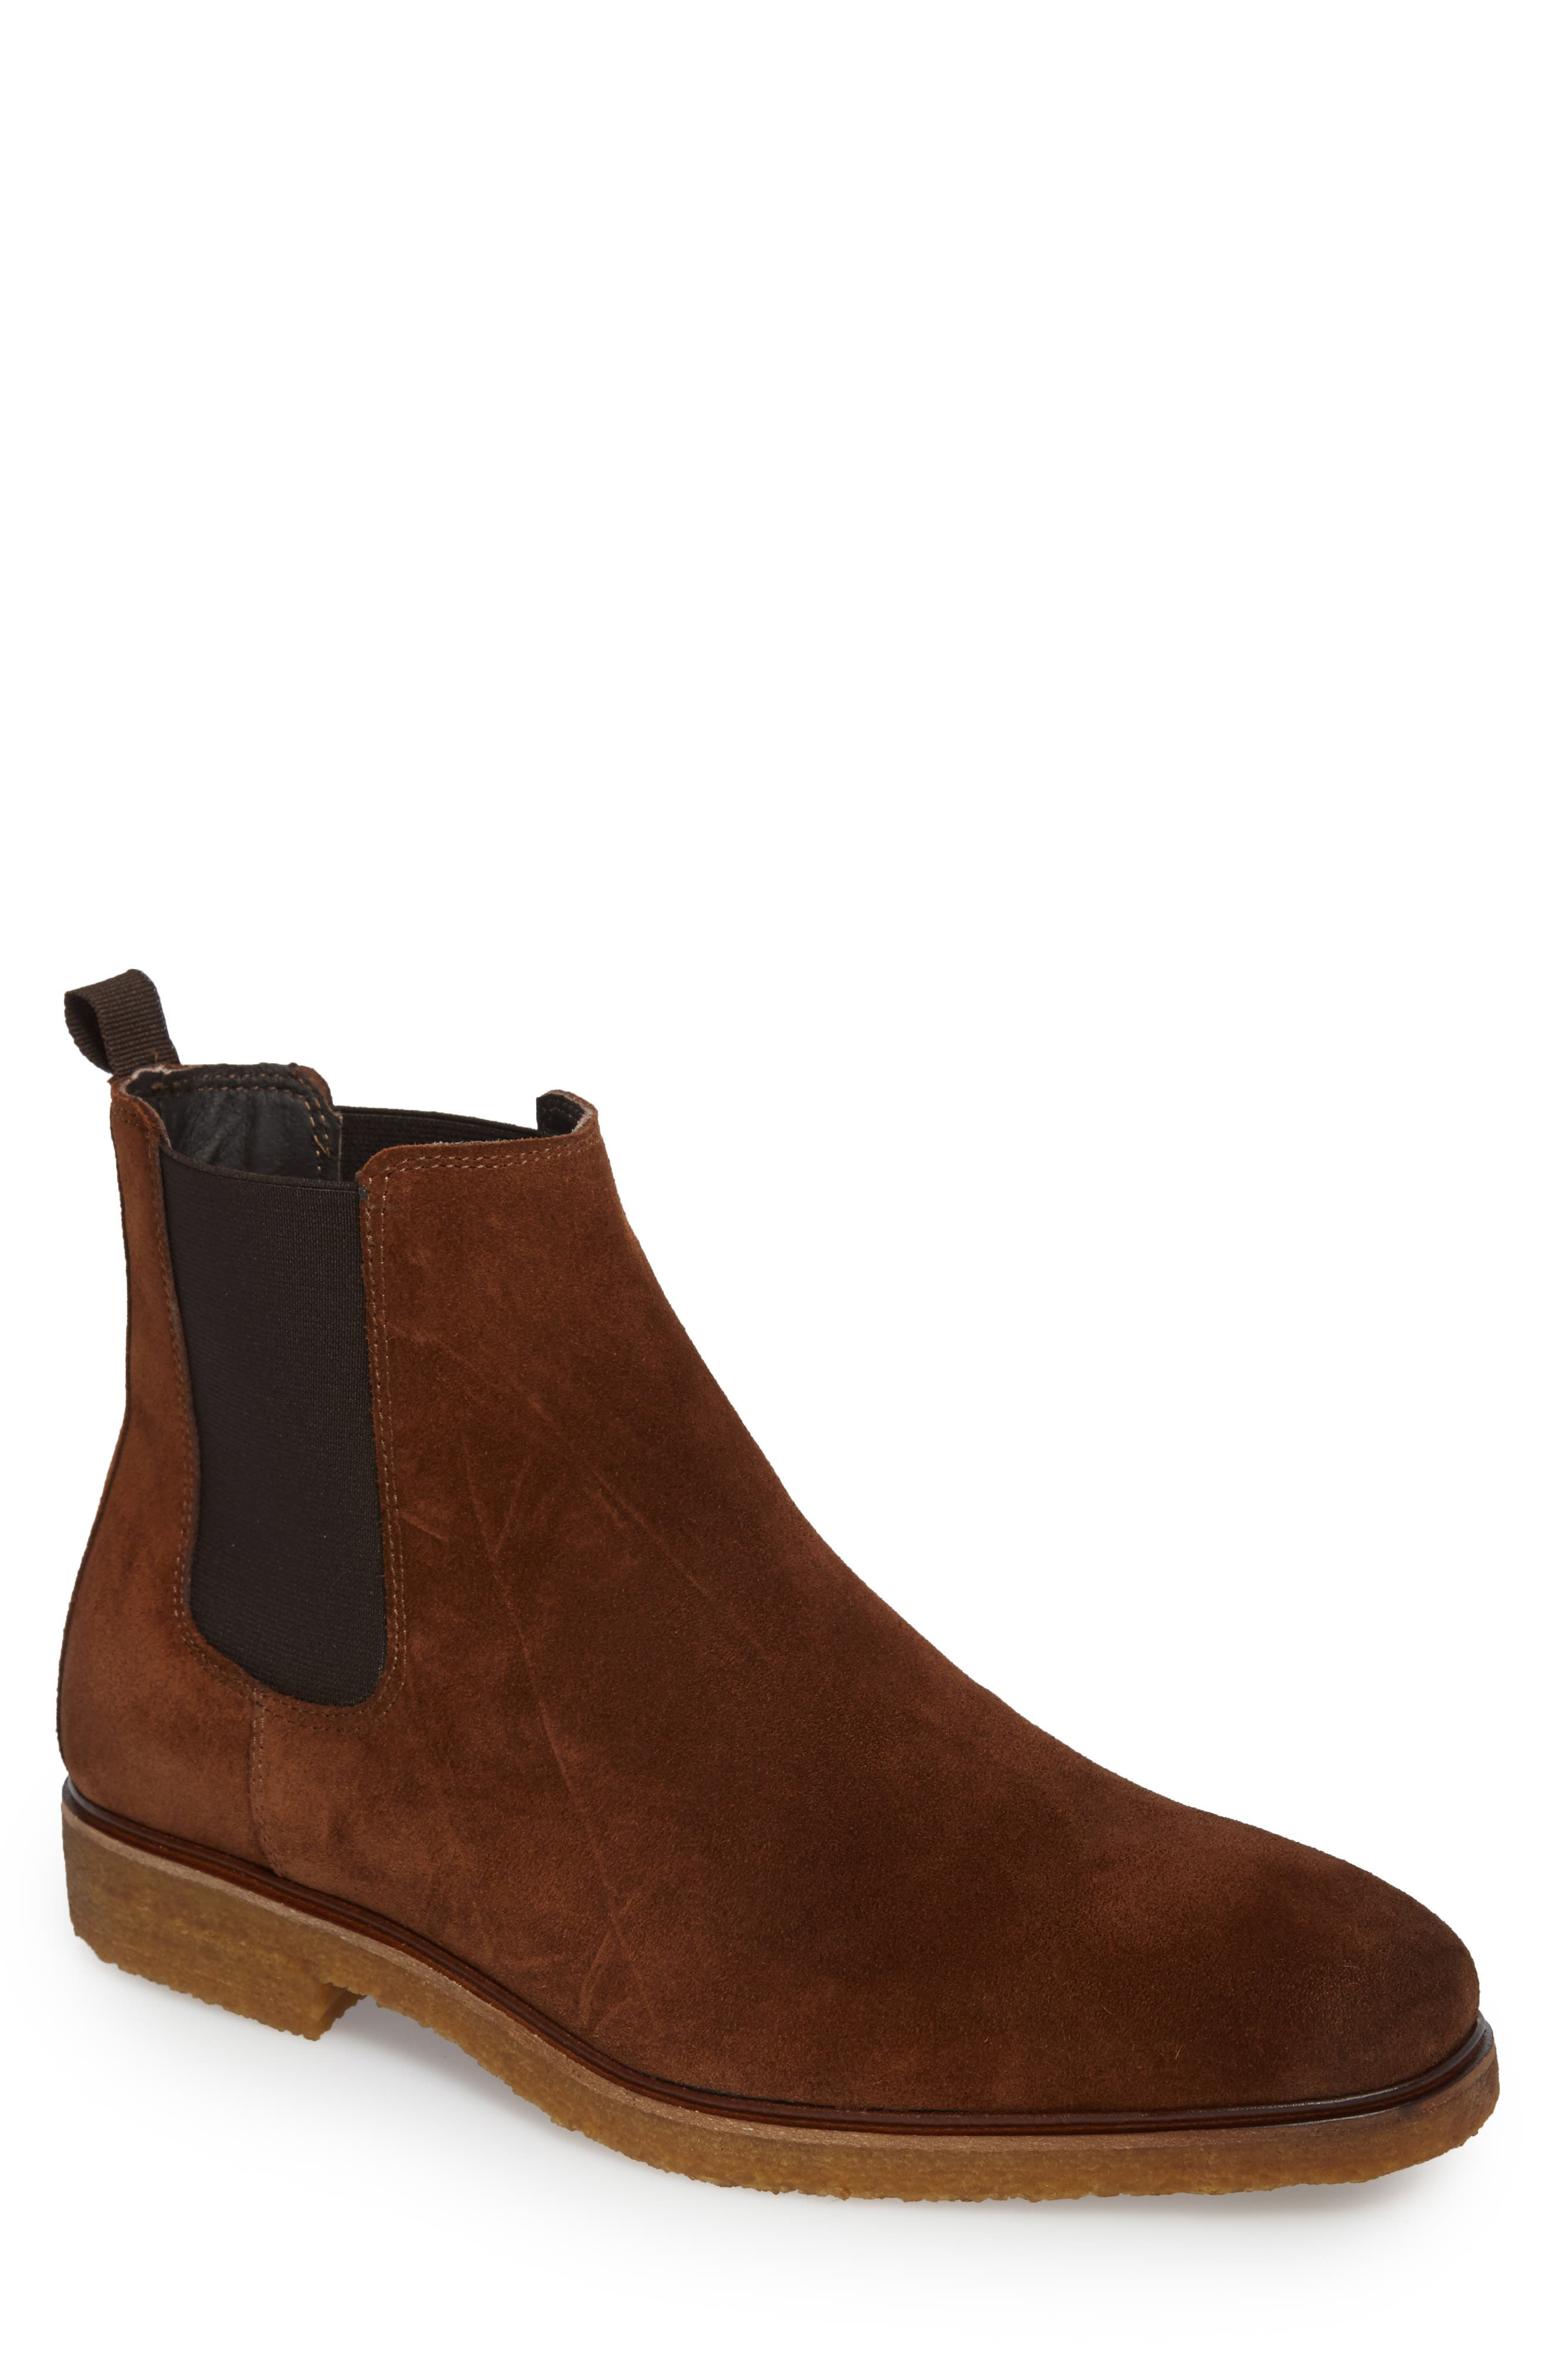 Sullivan Chelsea Boot,                             Main thumbnail 1, color,                             Sienna Suede Leather